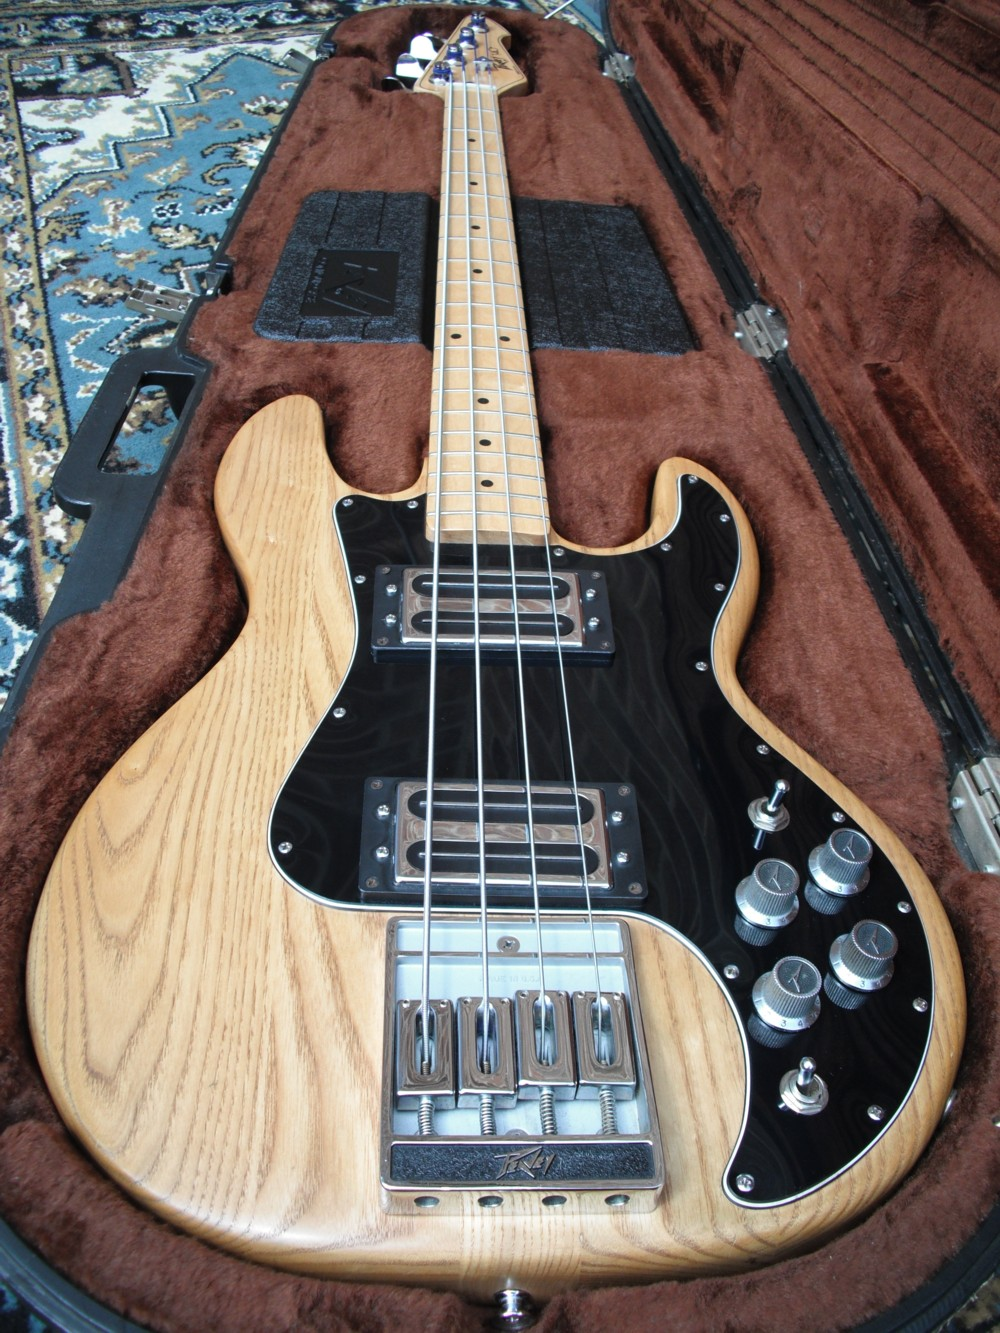 Flat Eric's Bass & Guitar Collection: Peavey T40 and Fathers Day